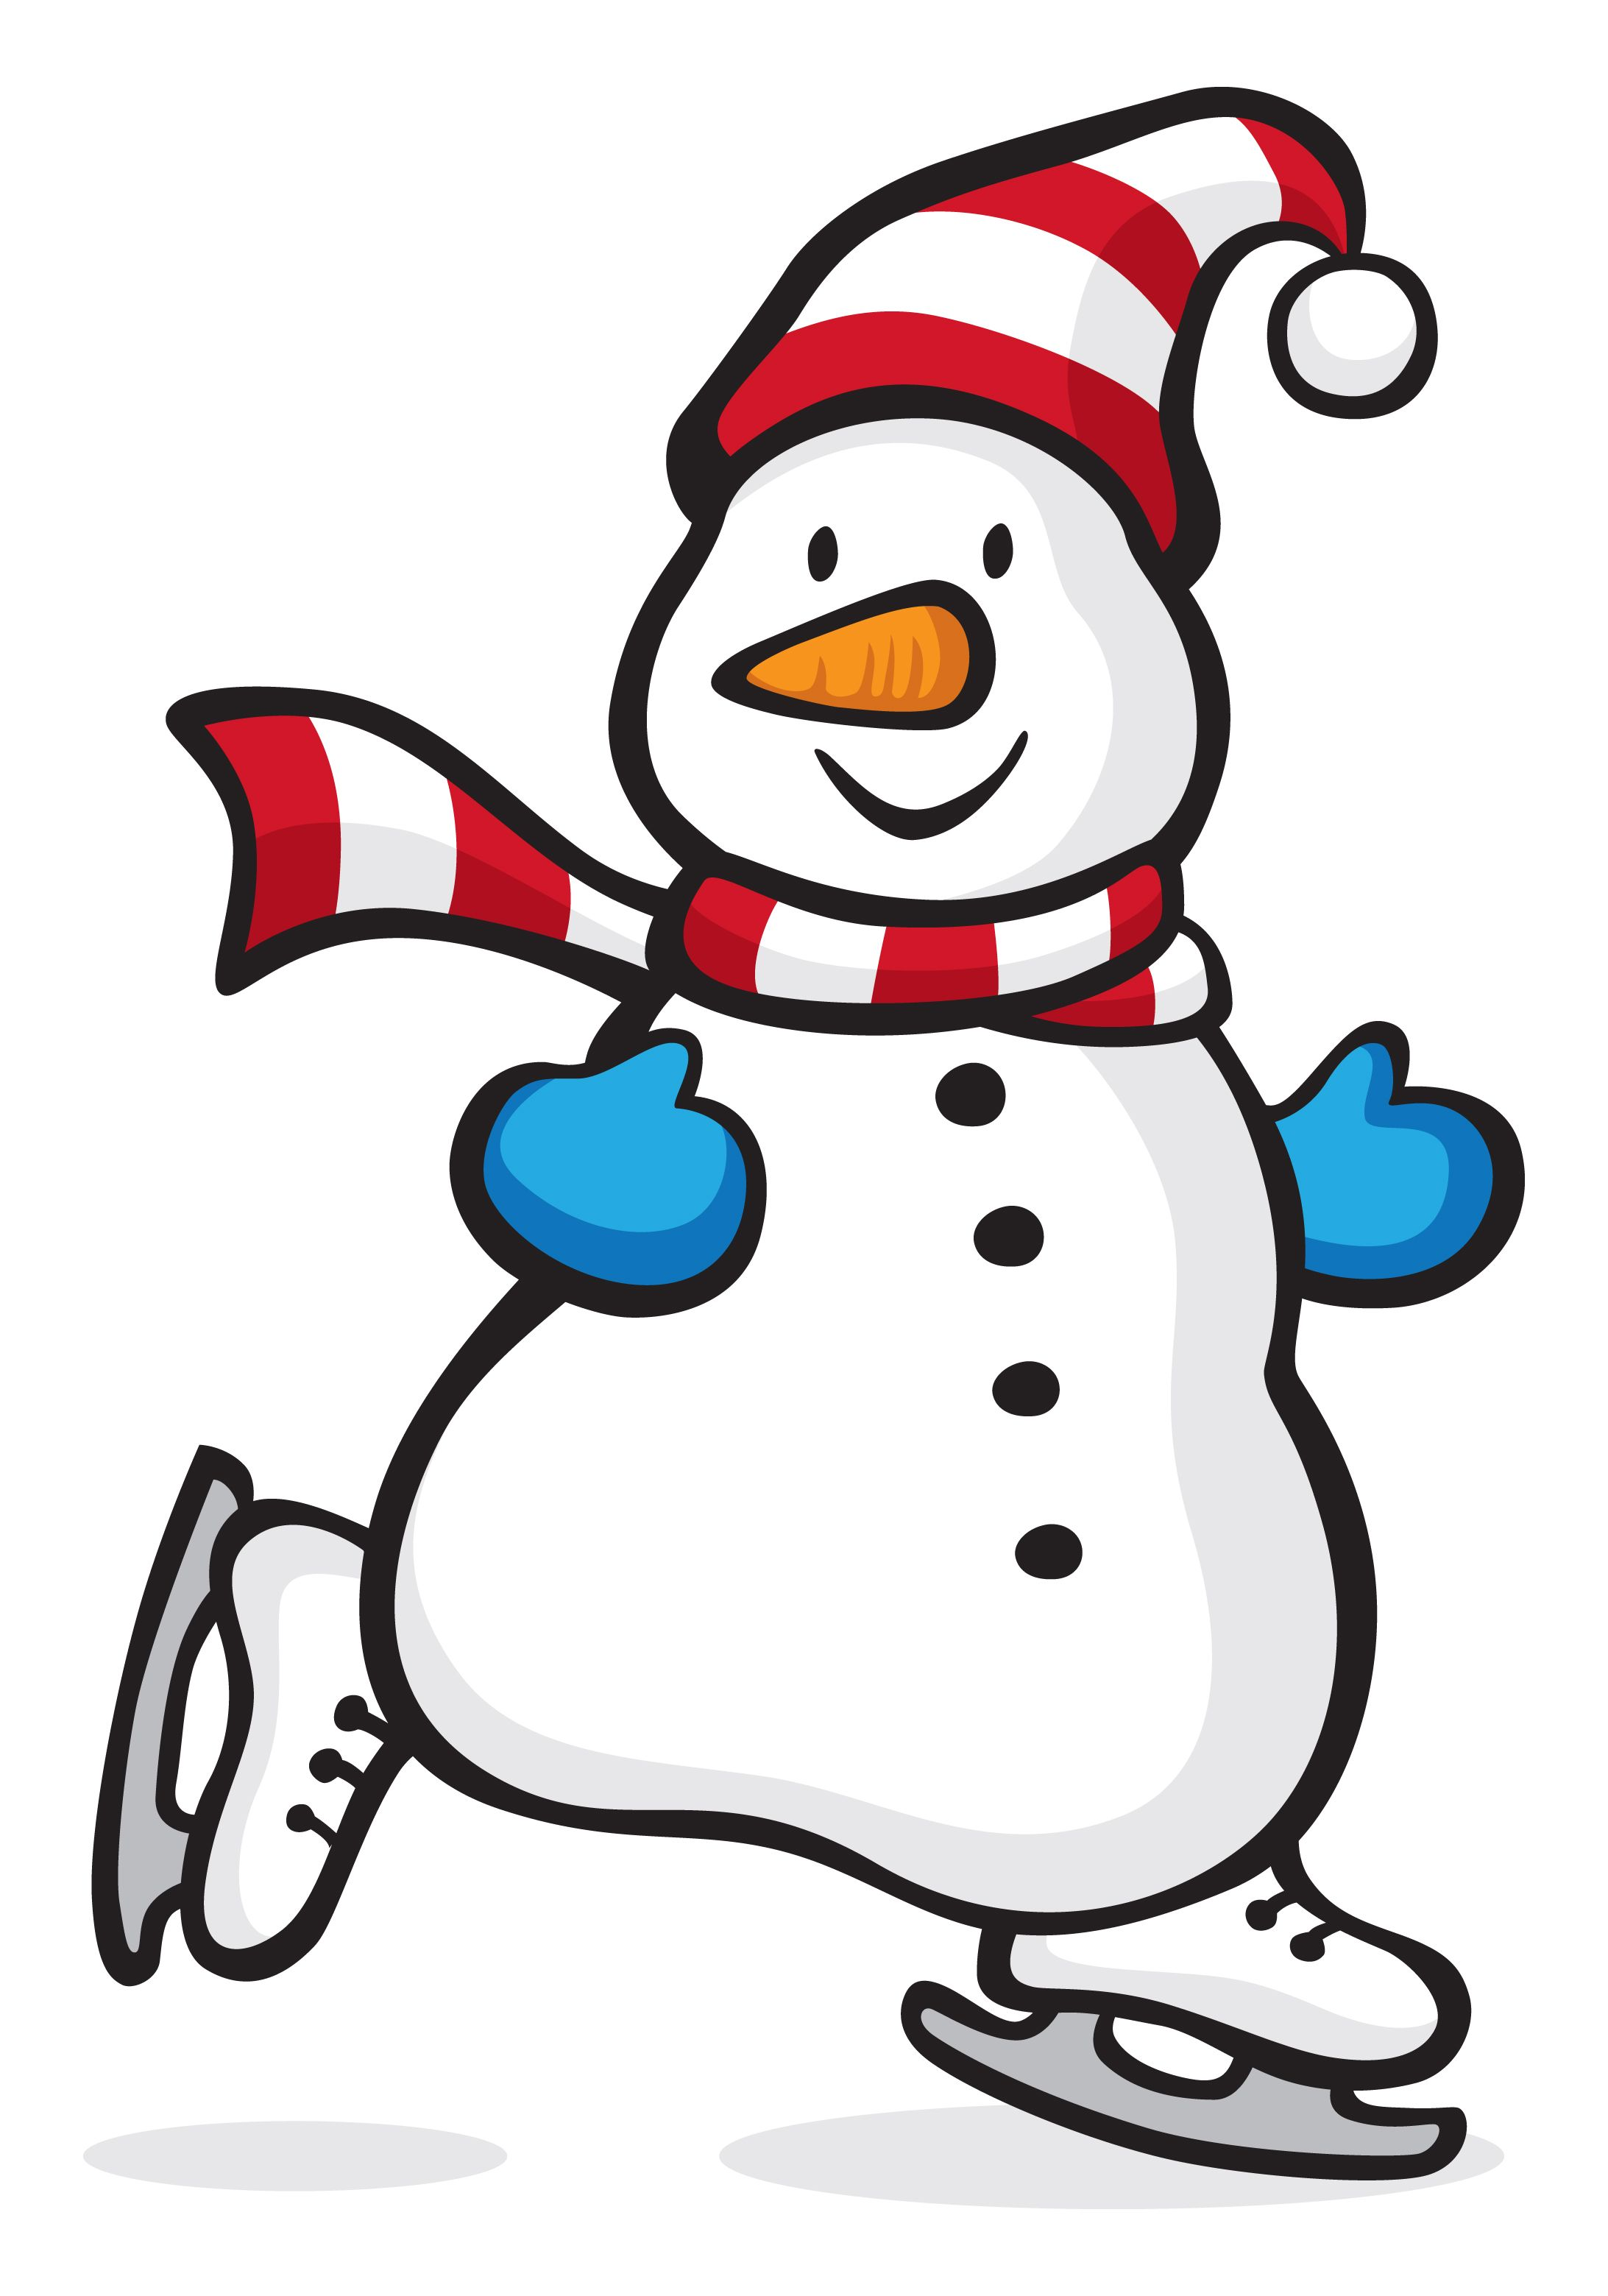 Pin By Joanna Tainter On Holiday Free Clip Art Snowman Clipart Snowman Images